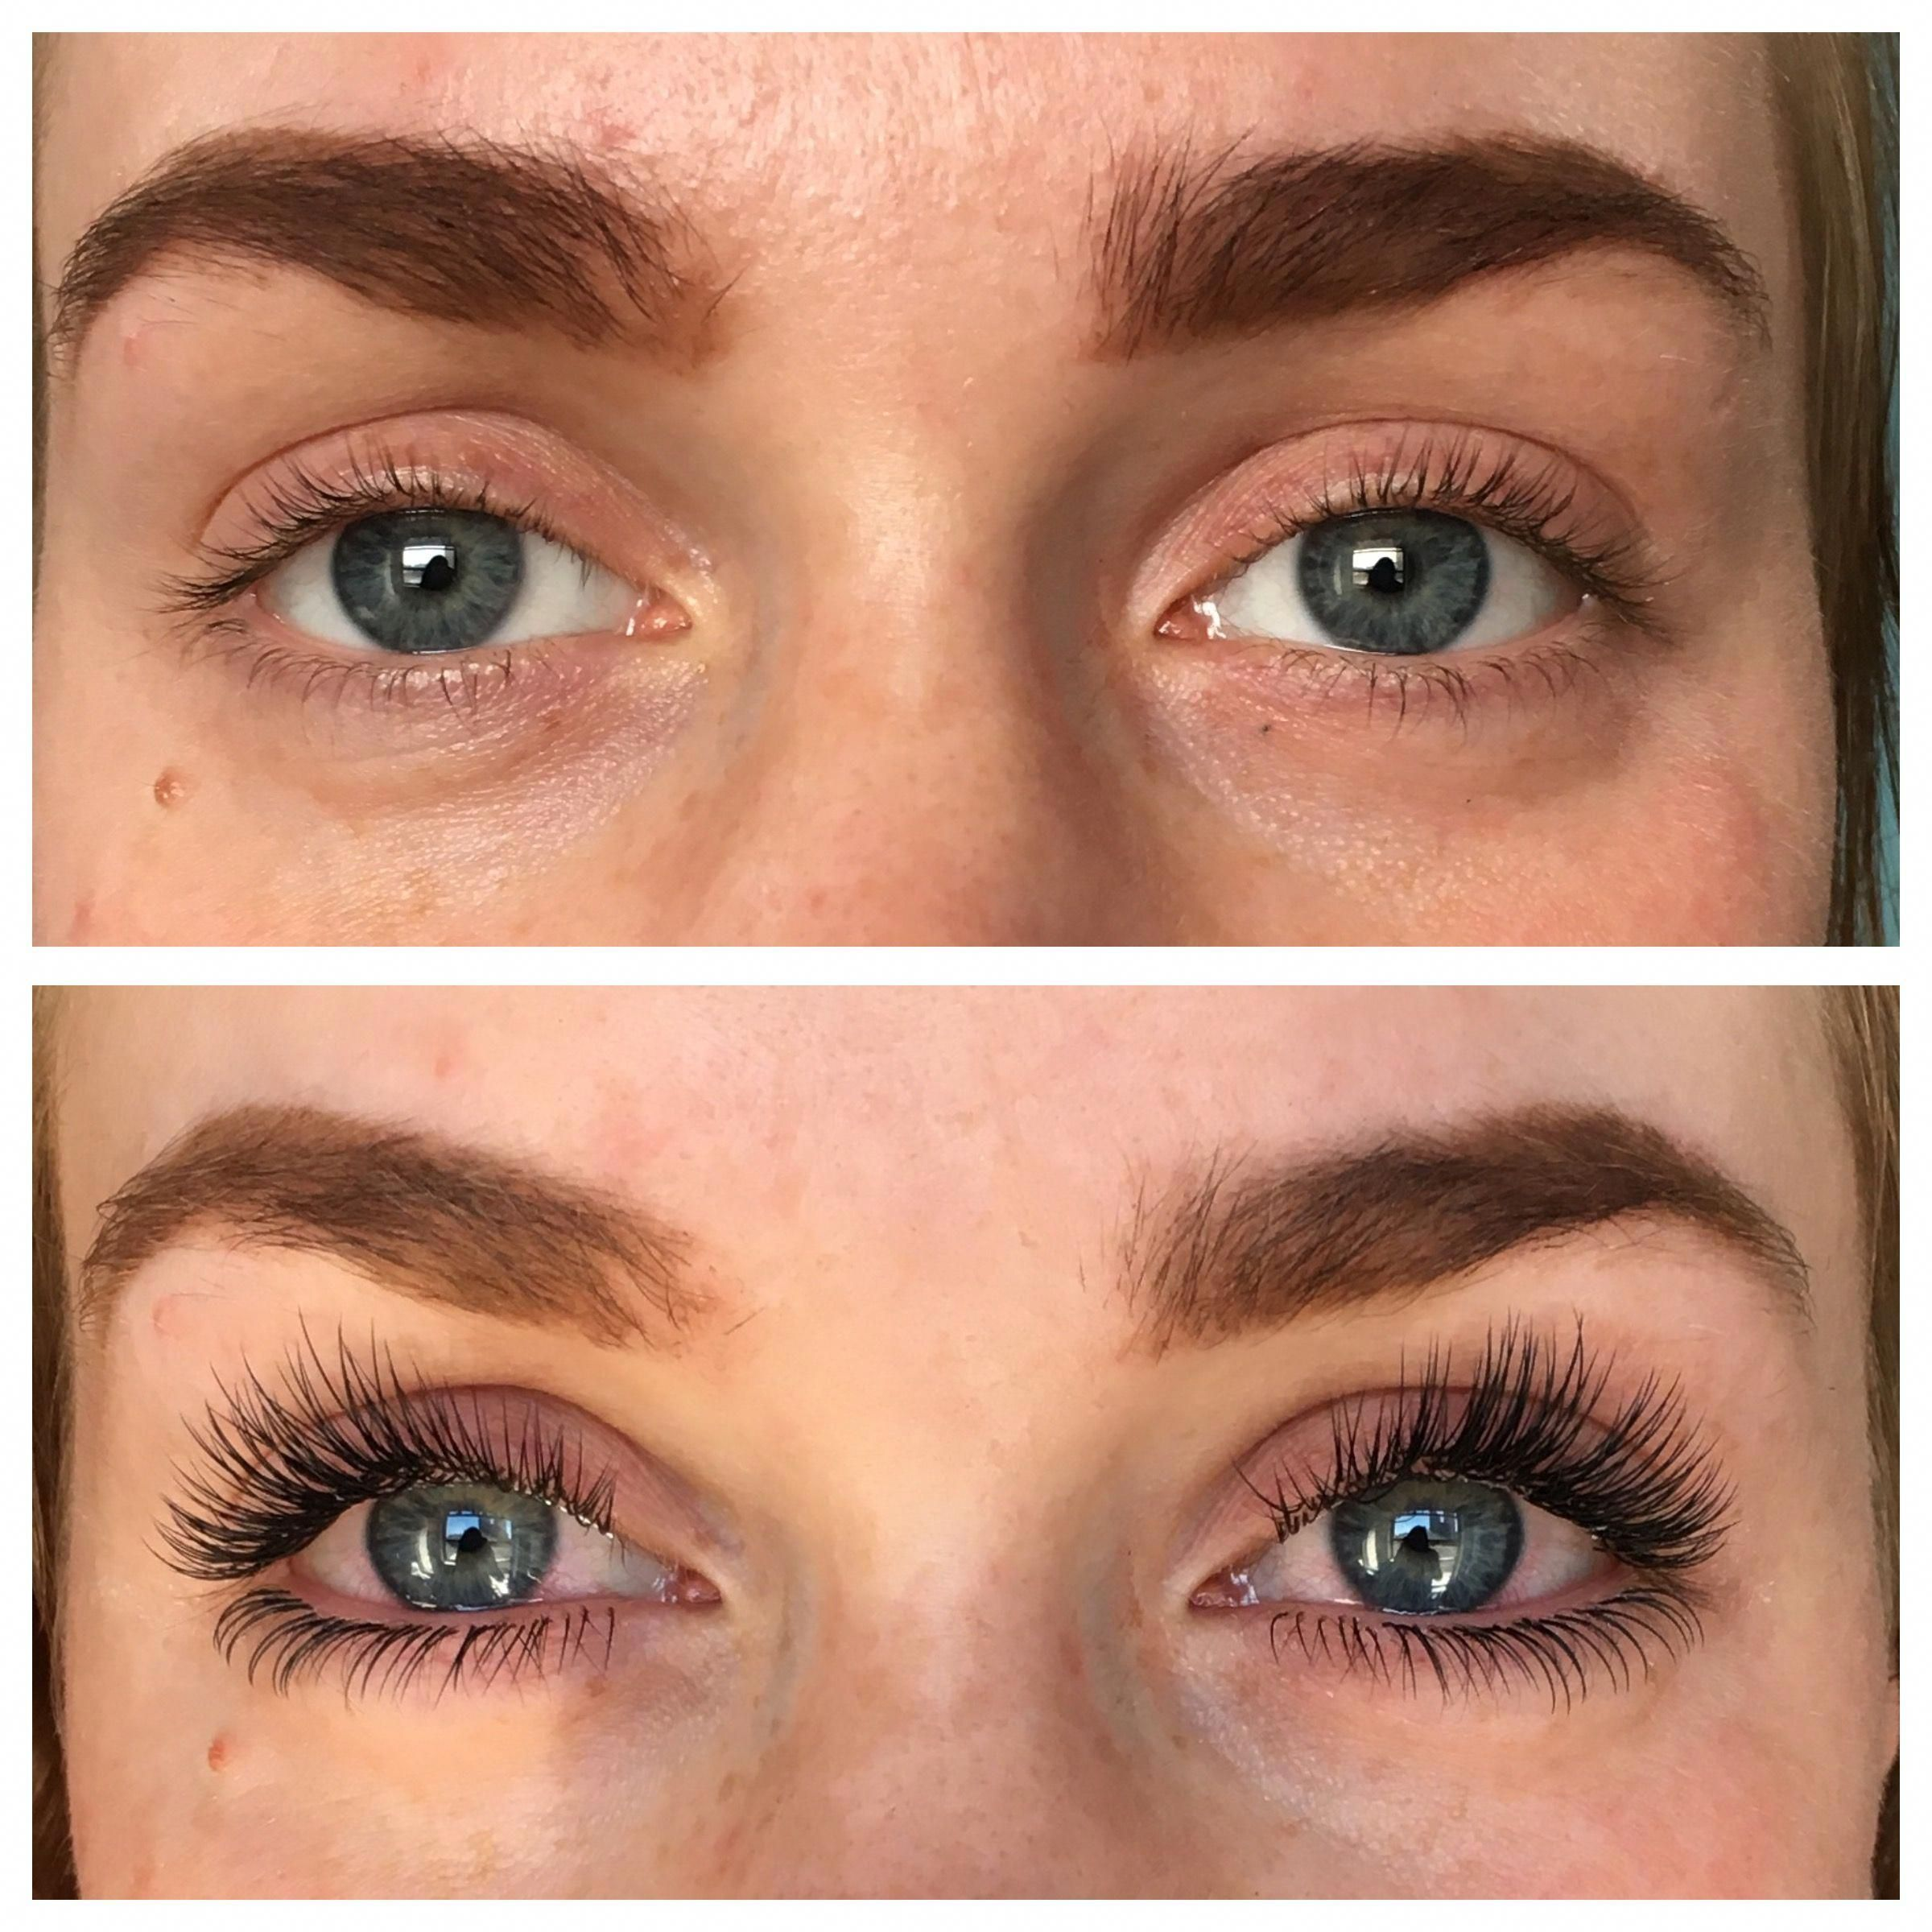 A complete eye makeover. Eyelash extensions at another